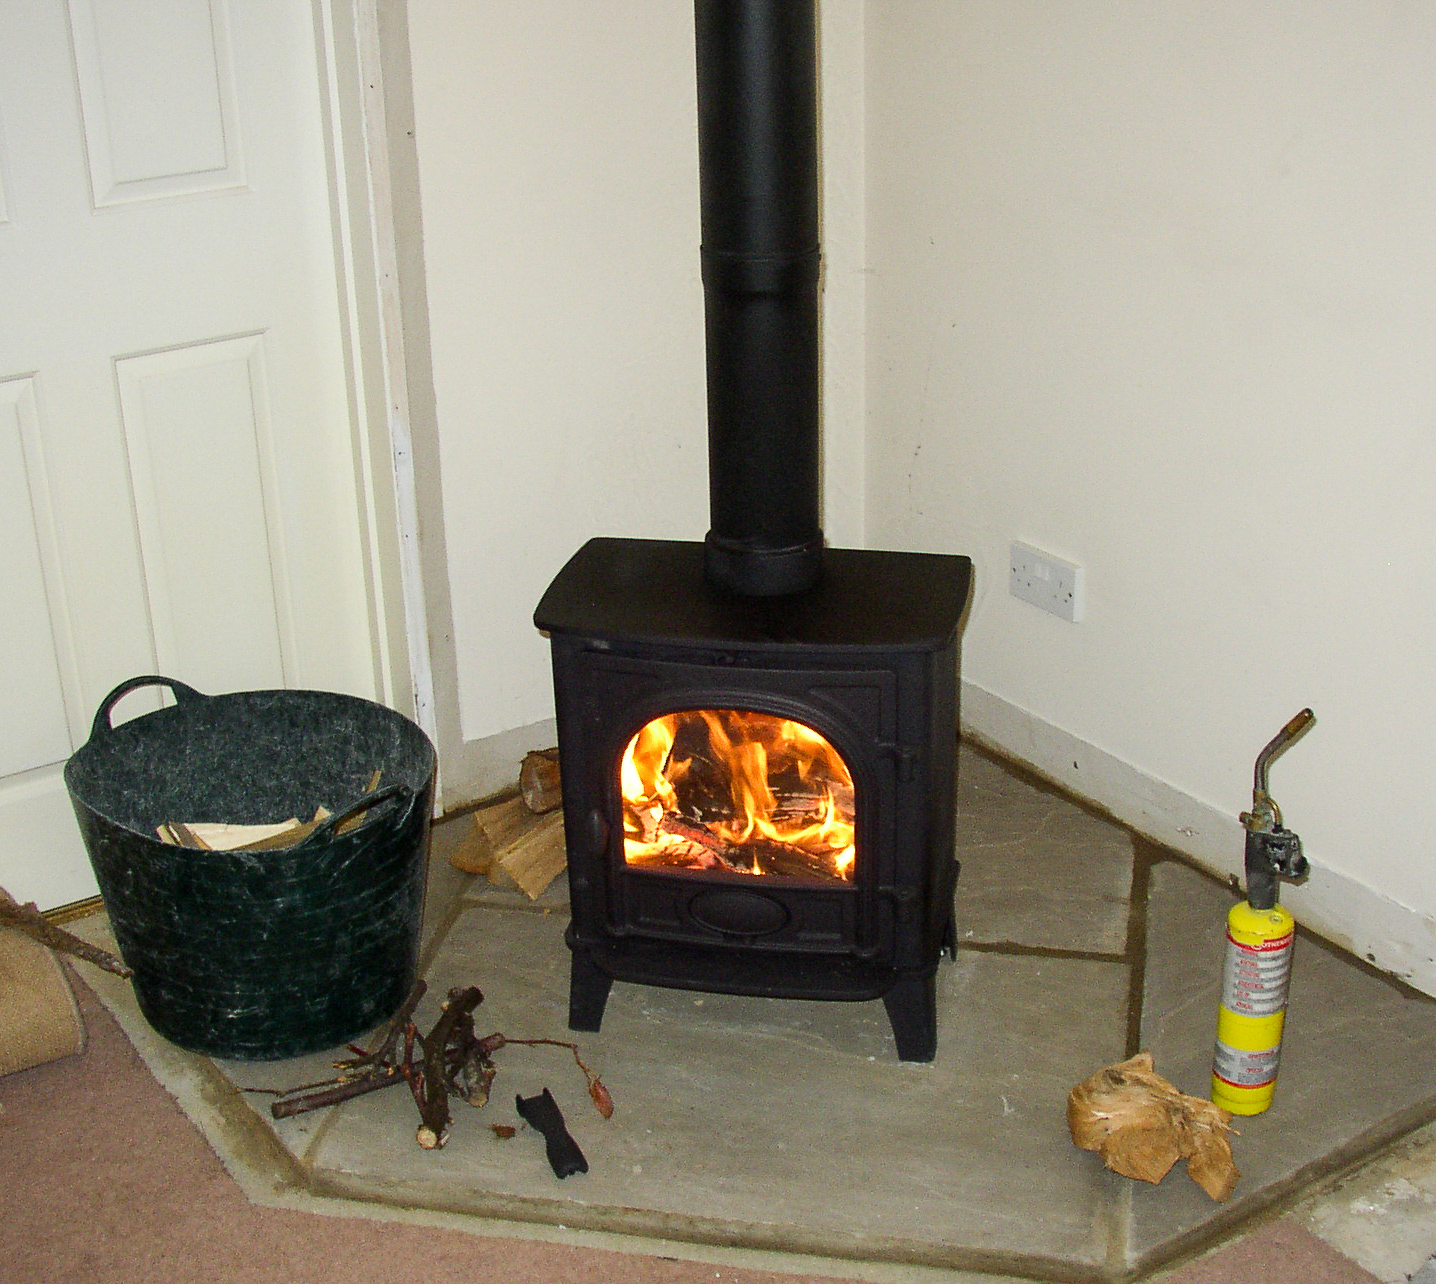 Installing and testing the wood burner